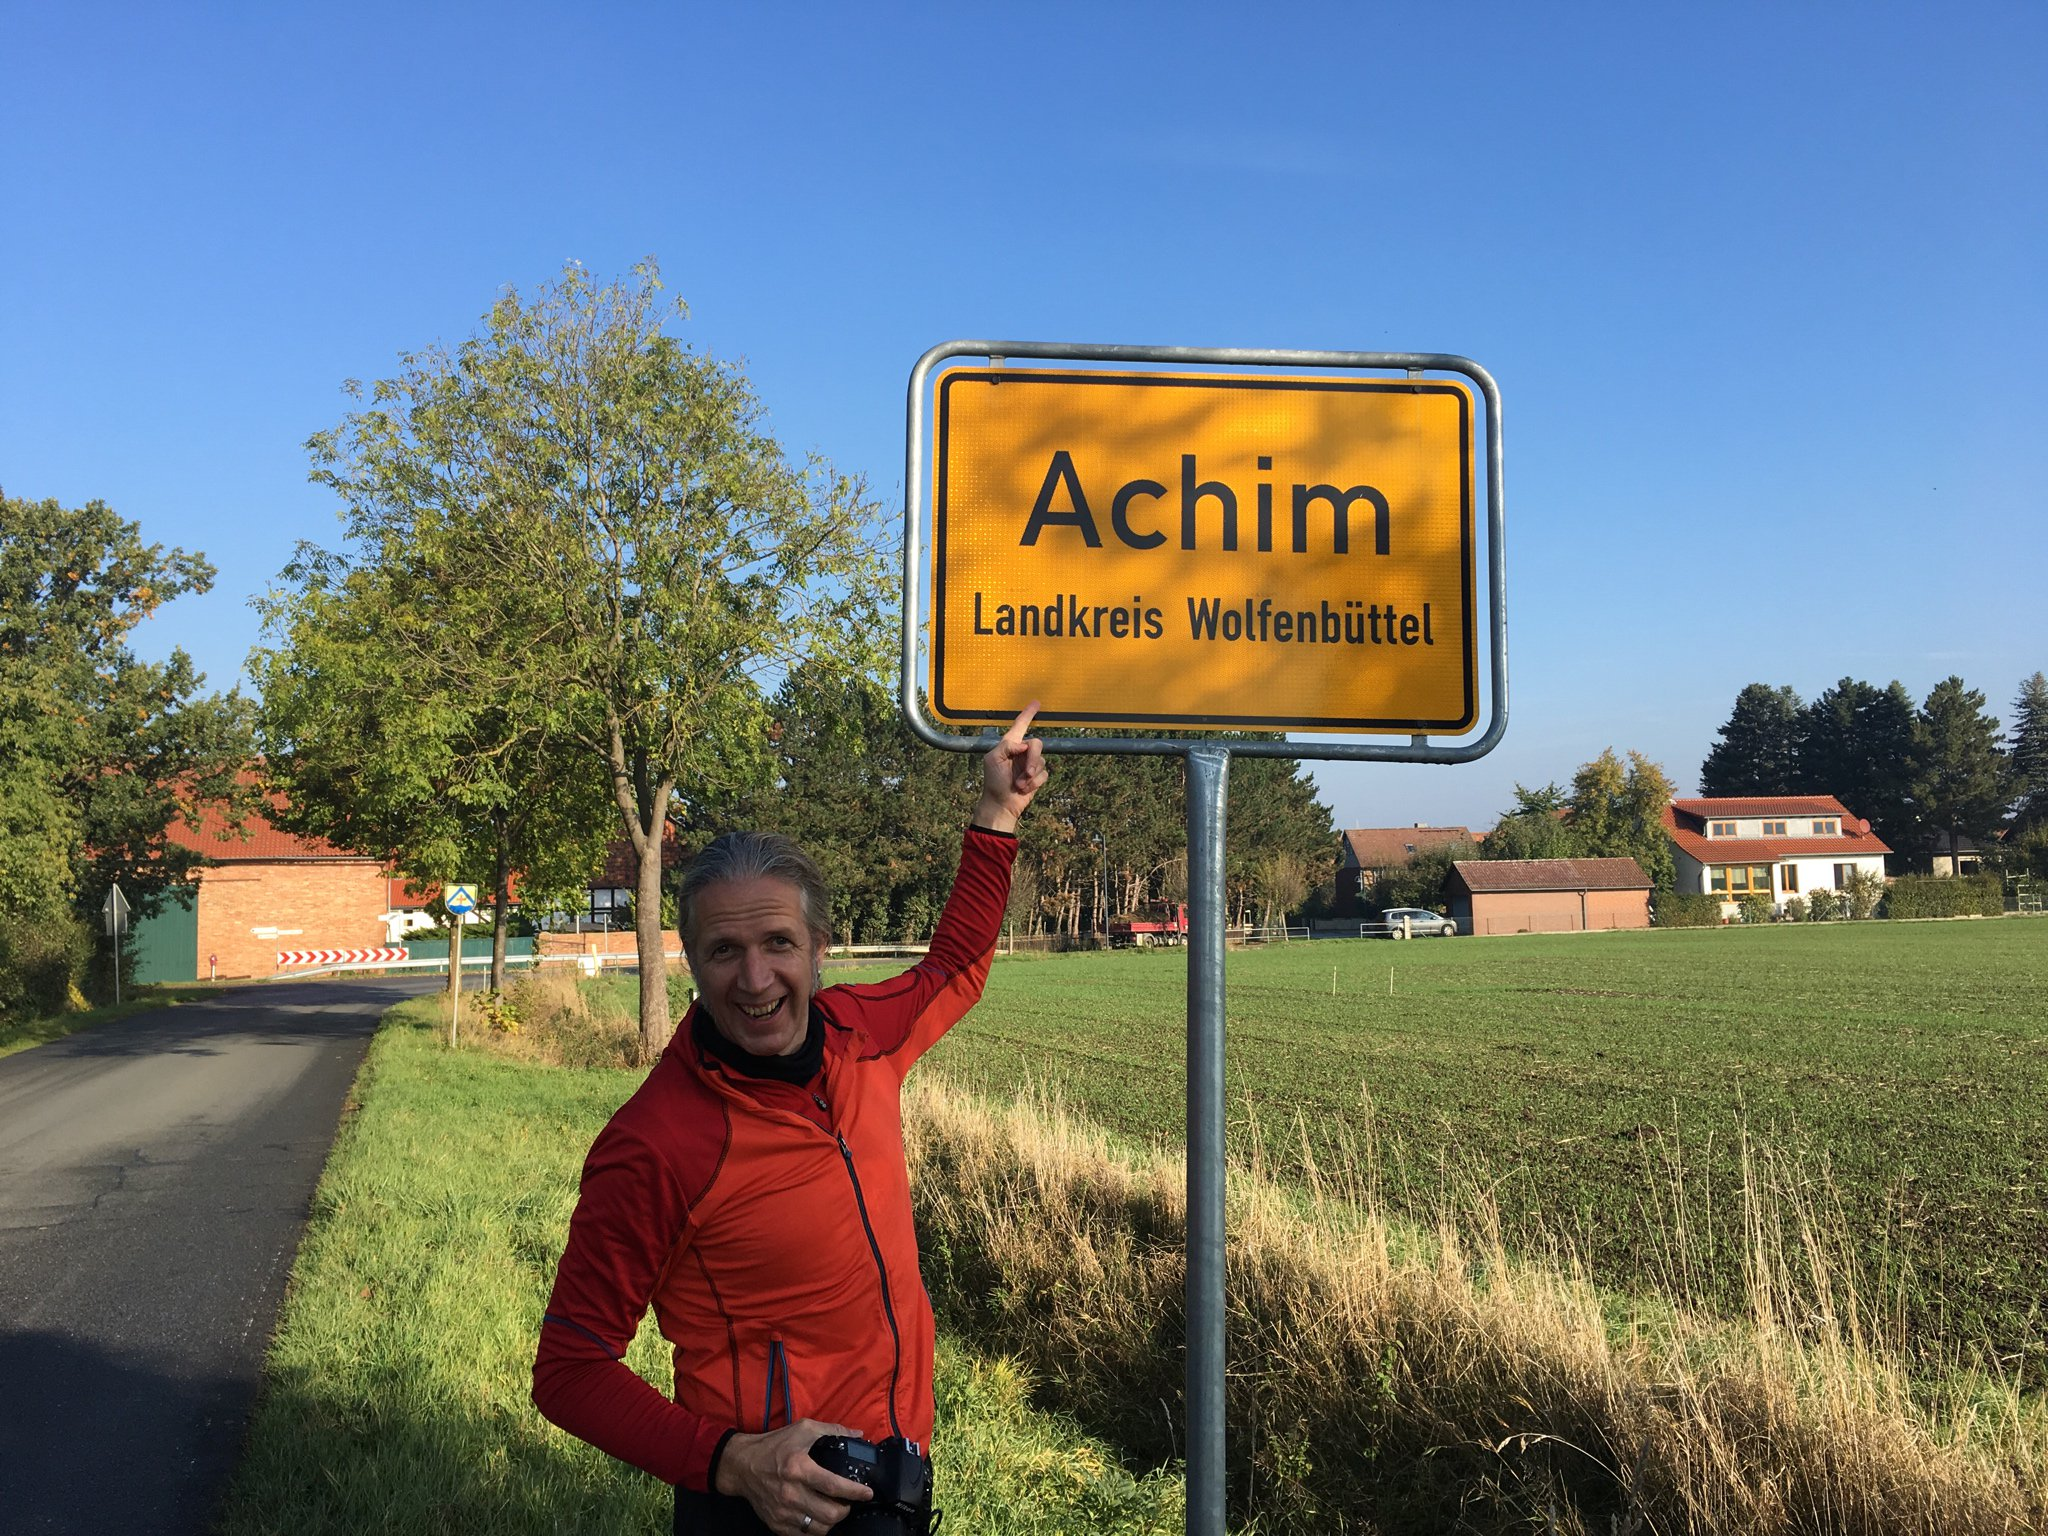 Achim in Achim #meurers #meinNhavo #namen https://t.co/1lz35czqwM